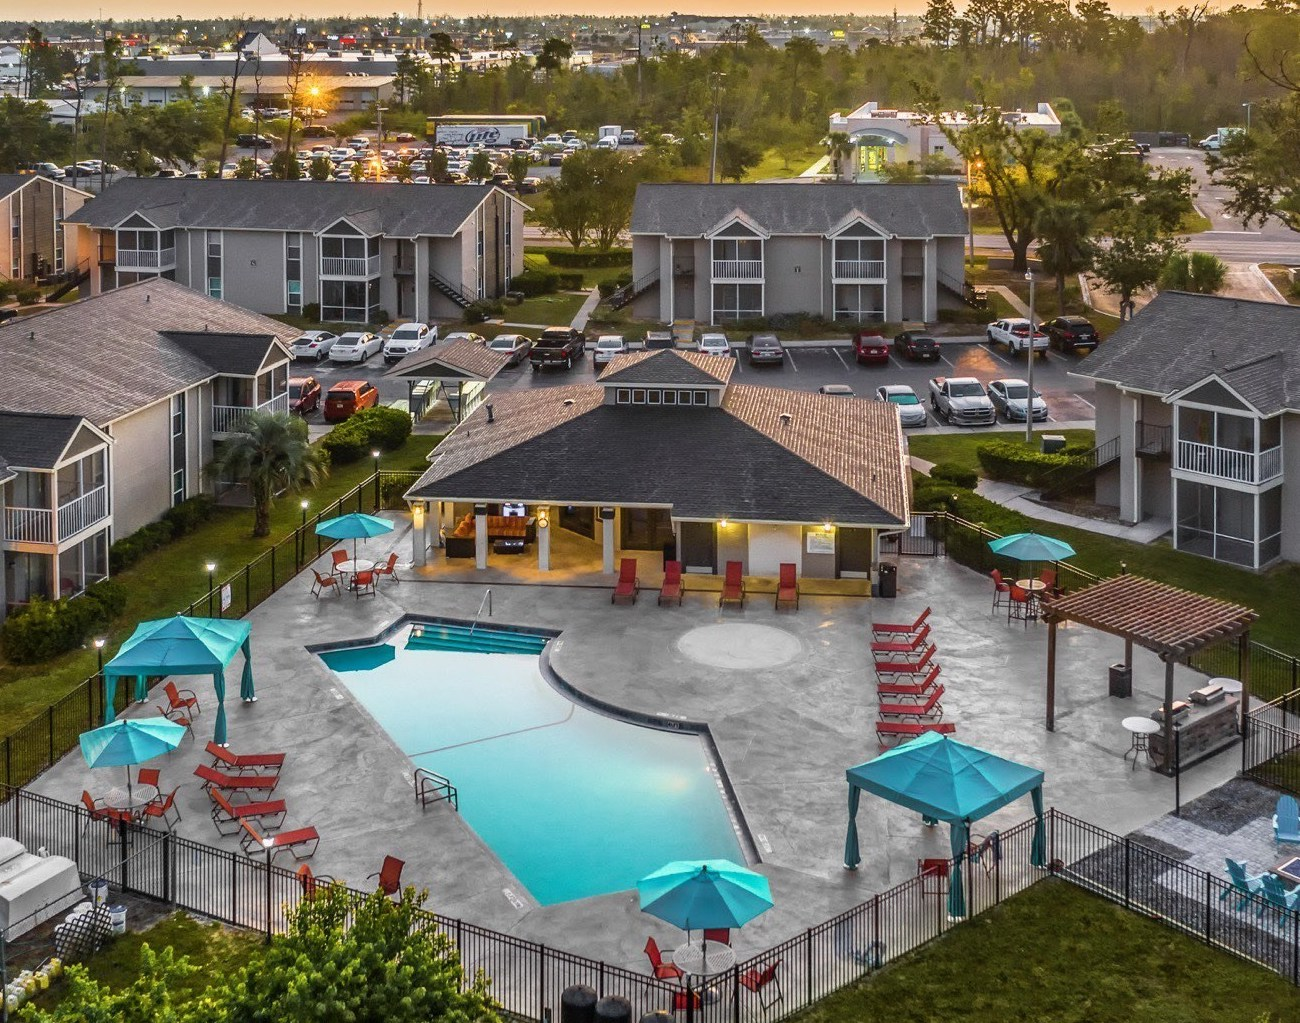 Lexerd Capital Management Acquires Spring Valley Club Apartments in Panama City and Avenue 29 Apartments in Tallahassee